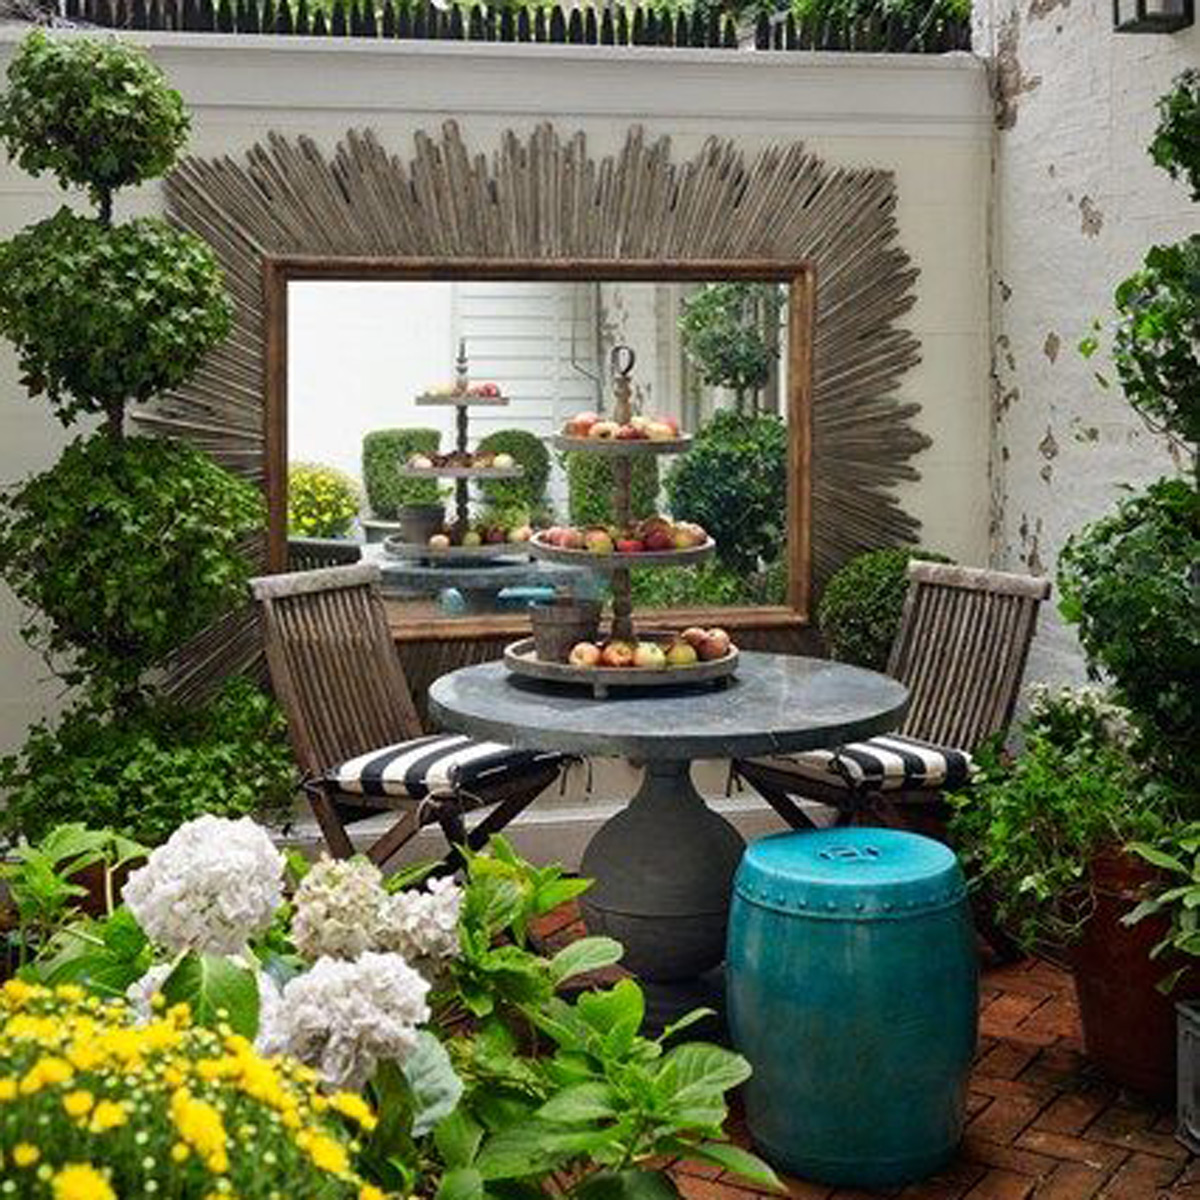 8 inspiring small garden ideas - Garden tips - Good ...